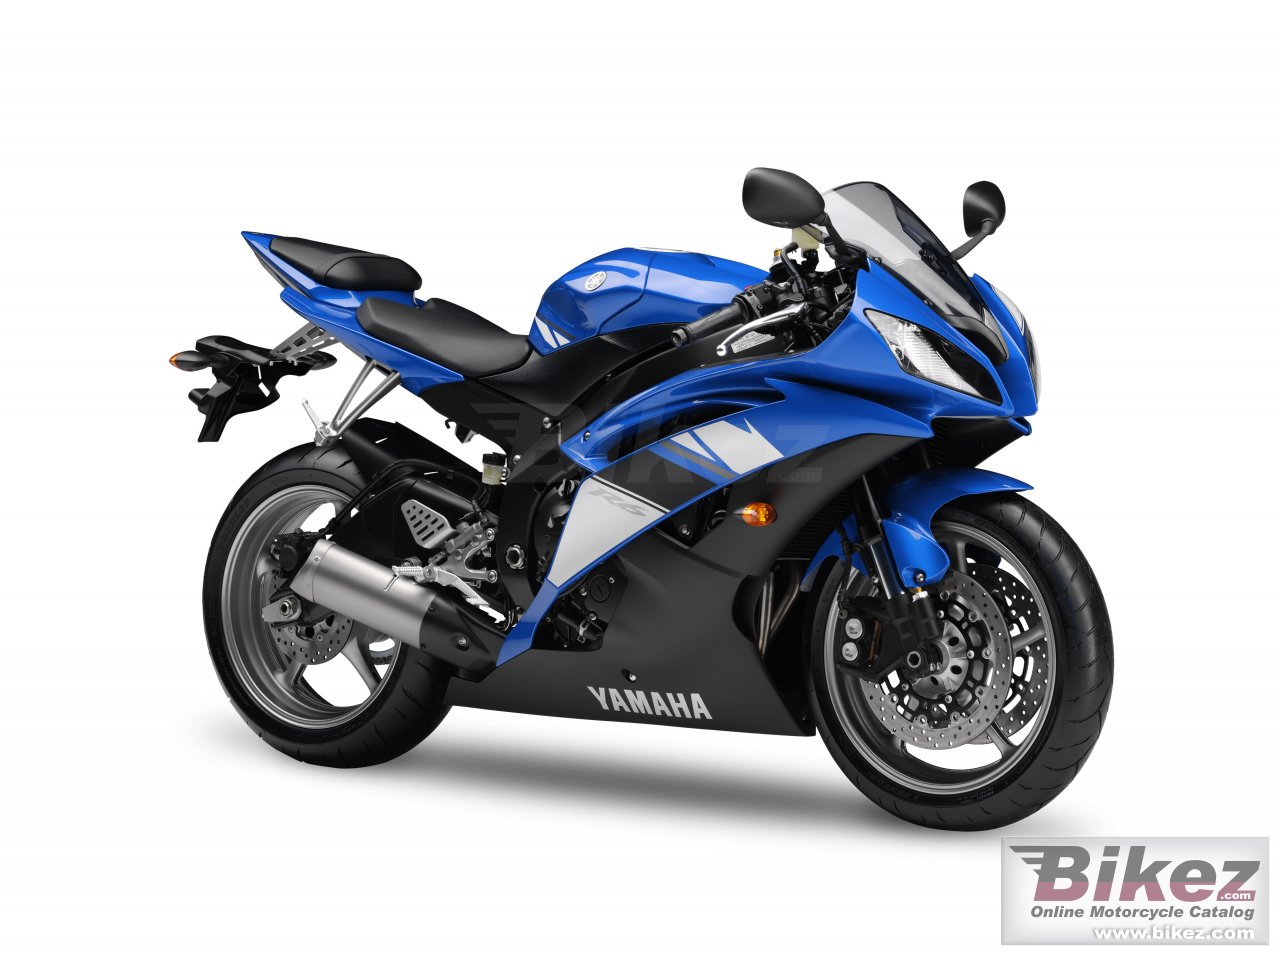 Big Yamaha yzf-r6 picture and wallpaper from Bikez.com